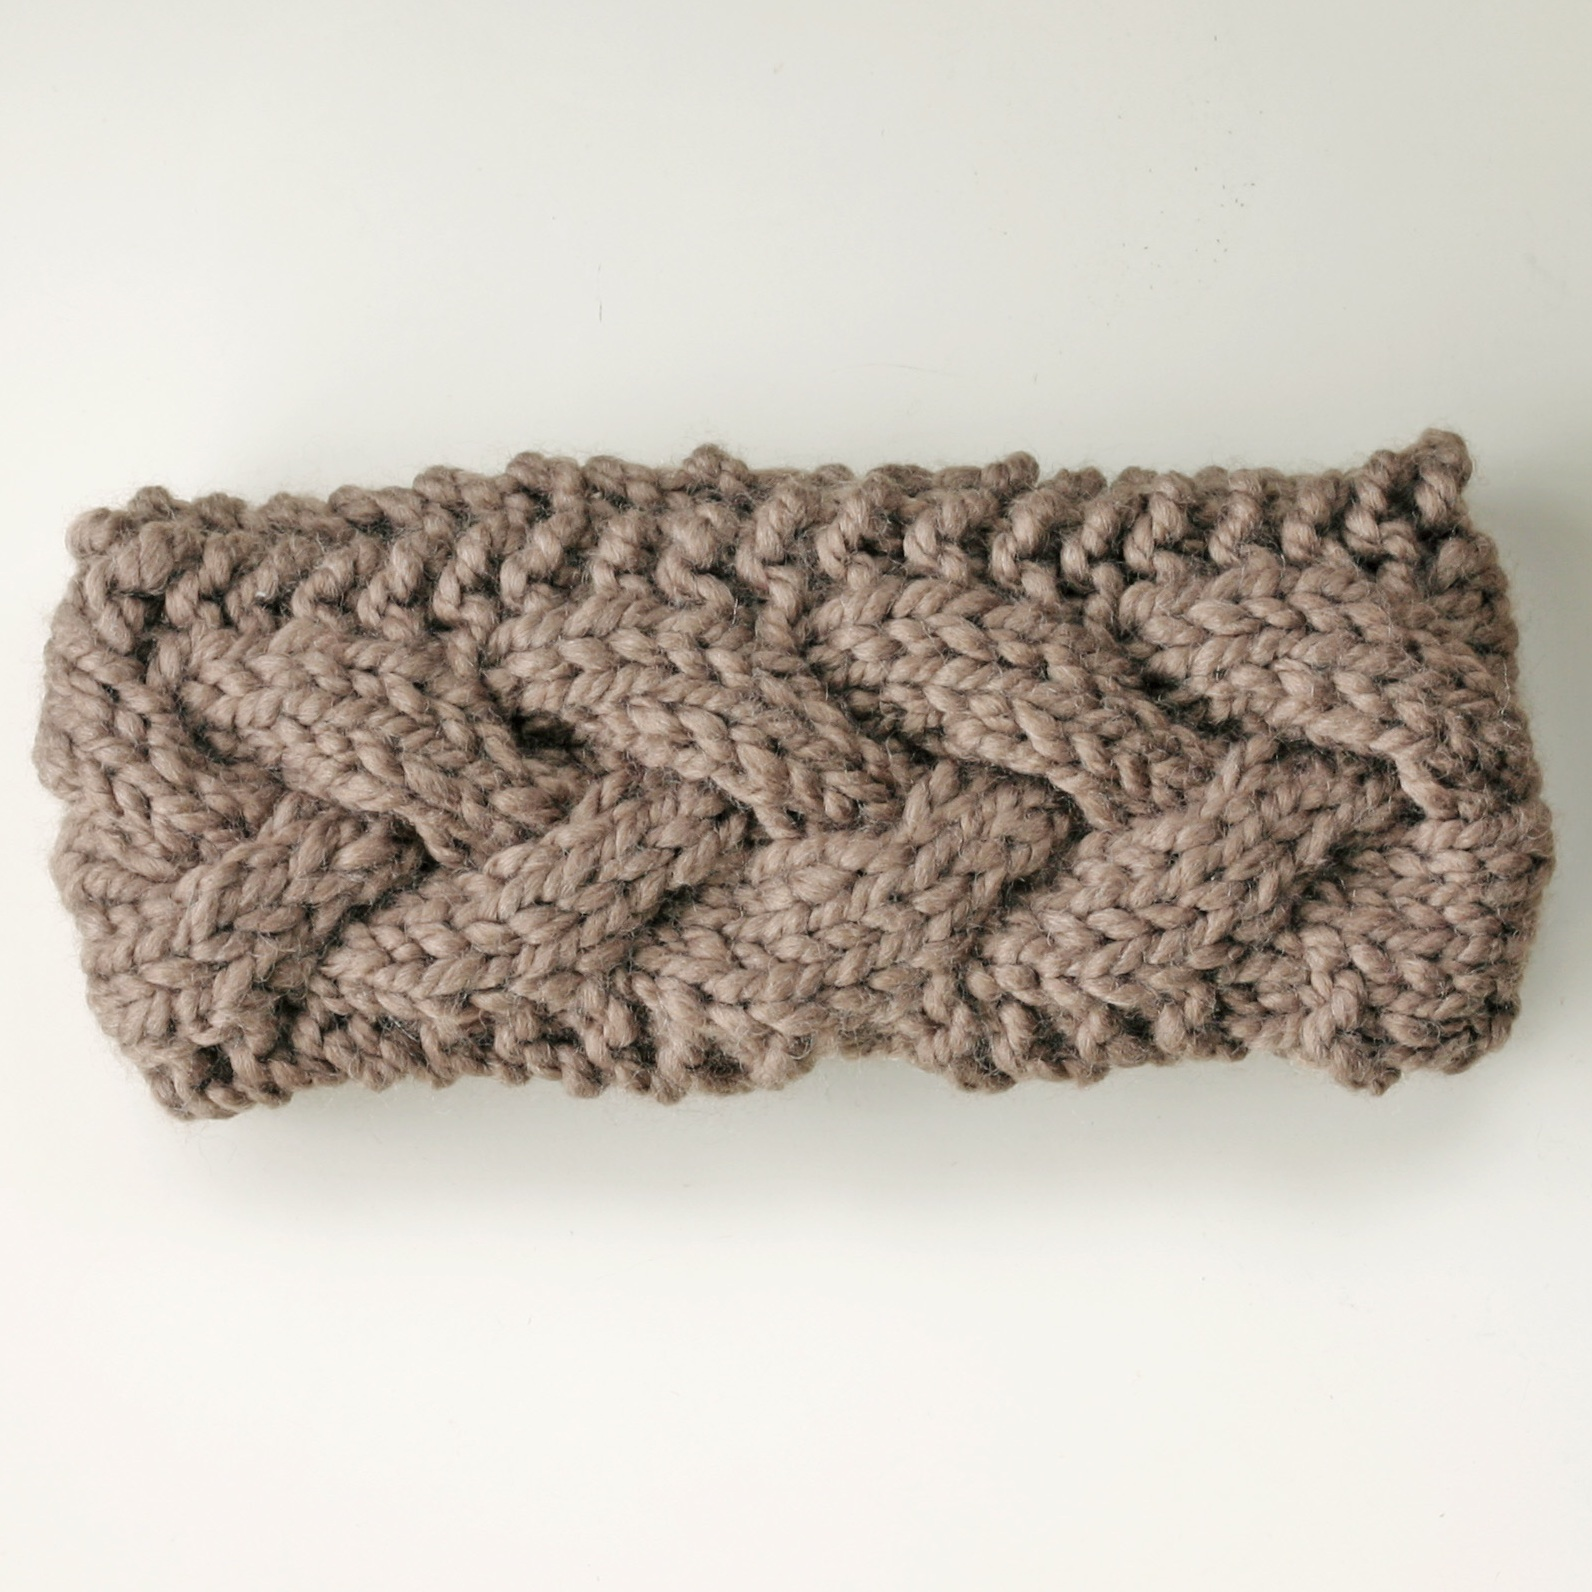 Knitted Ear Warmer Pattern : Chunky Knit Ear Warmer Headband KNITS FOR LIFE